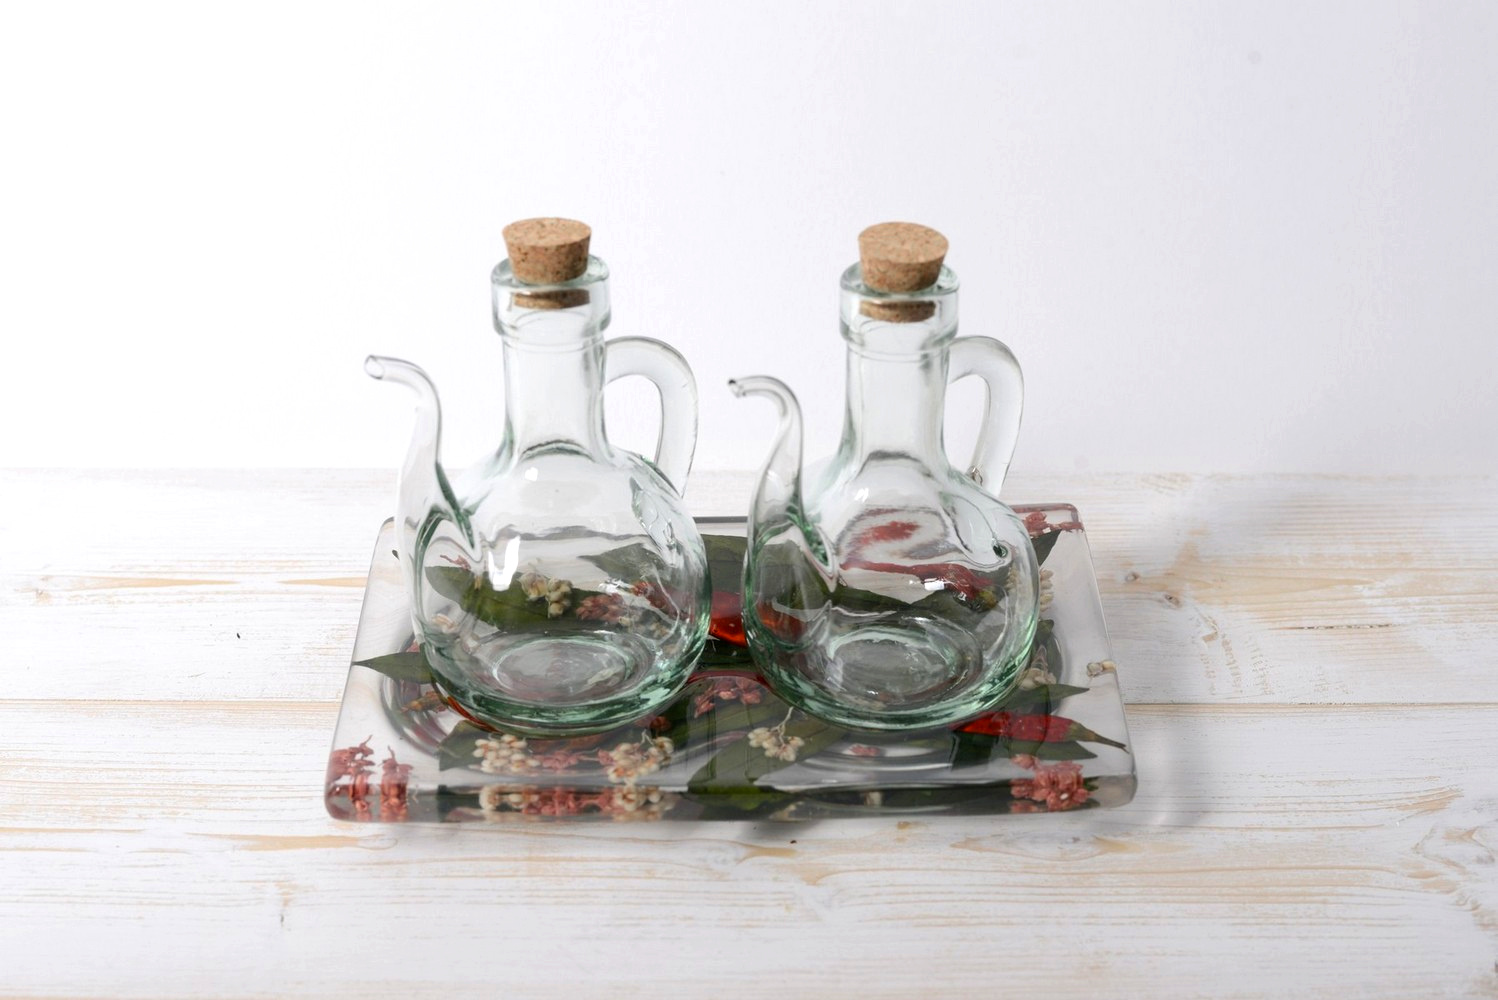 Oil/Vinegar Set Chili Collection cm 19x12 h15